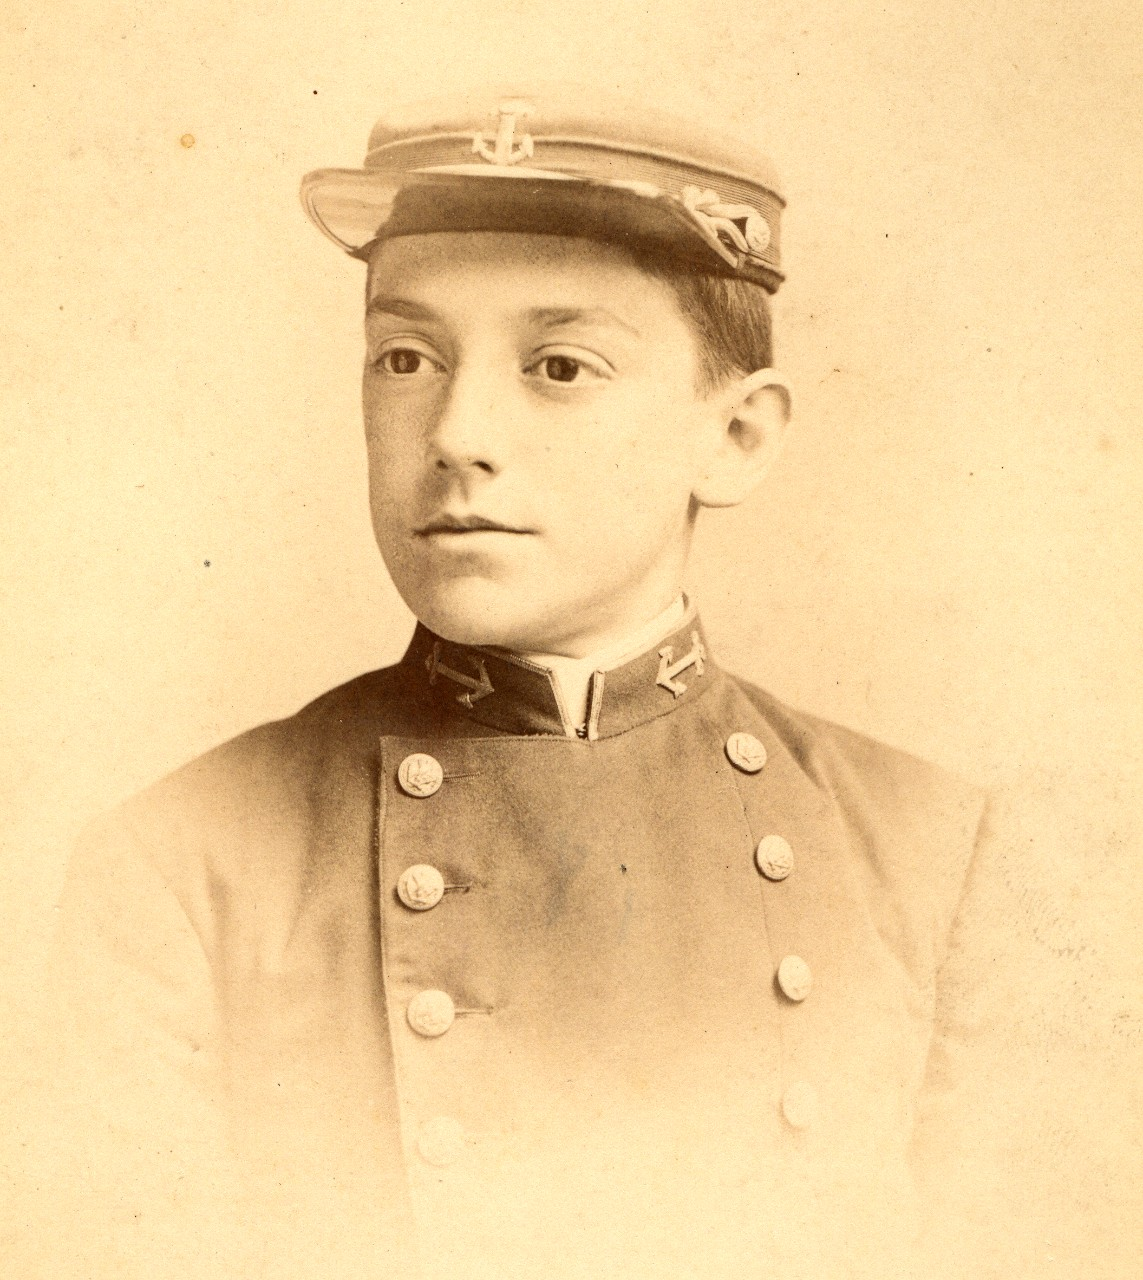 98 photographs and cabinet cards related to the United States Naval Academy in the 1880s and 1890s. Good views of the grounds and buildings, and many excellent views of midshipmen. Names are handwritten and often difficult to make out.